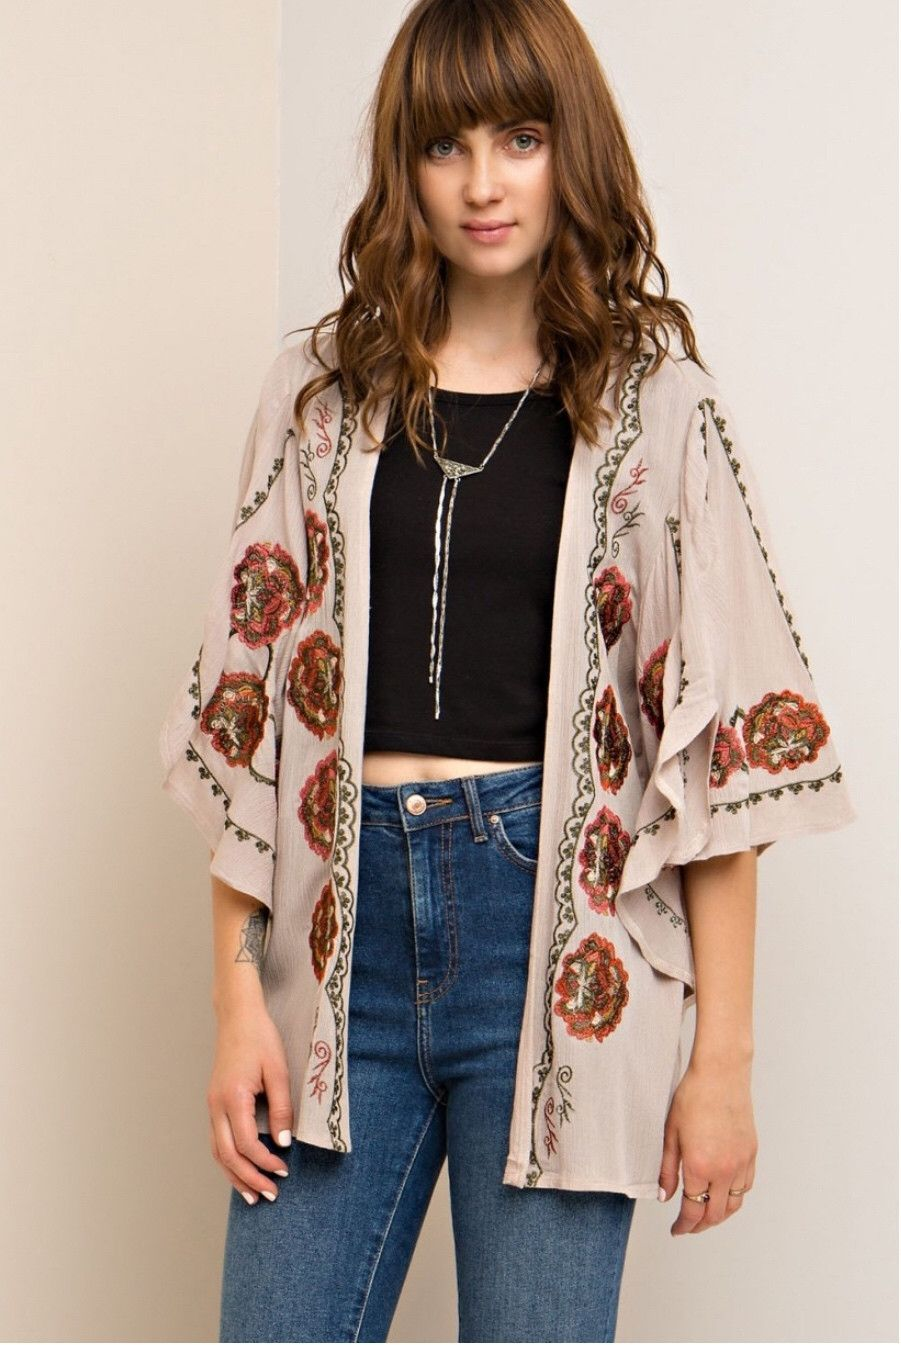 The Carly Kimono | Products | Pinterest | Kimonos, Products and ...